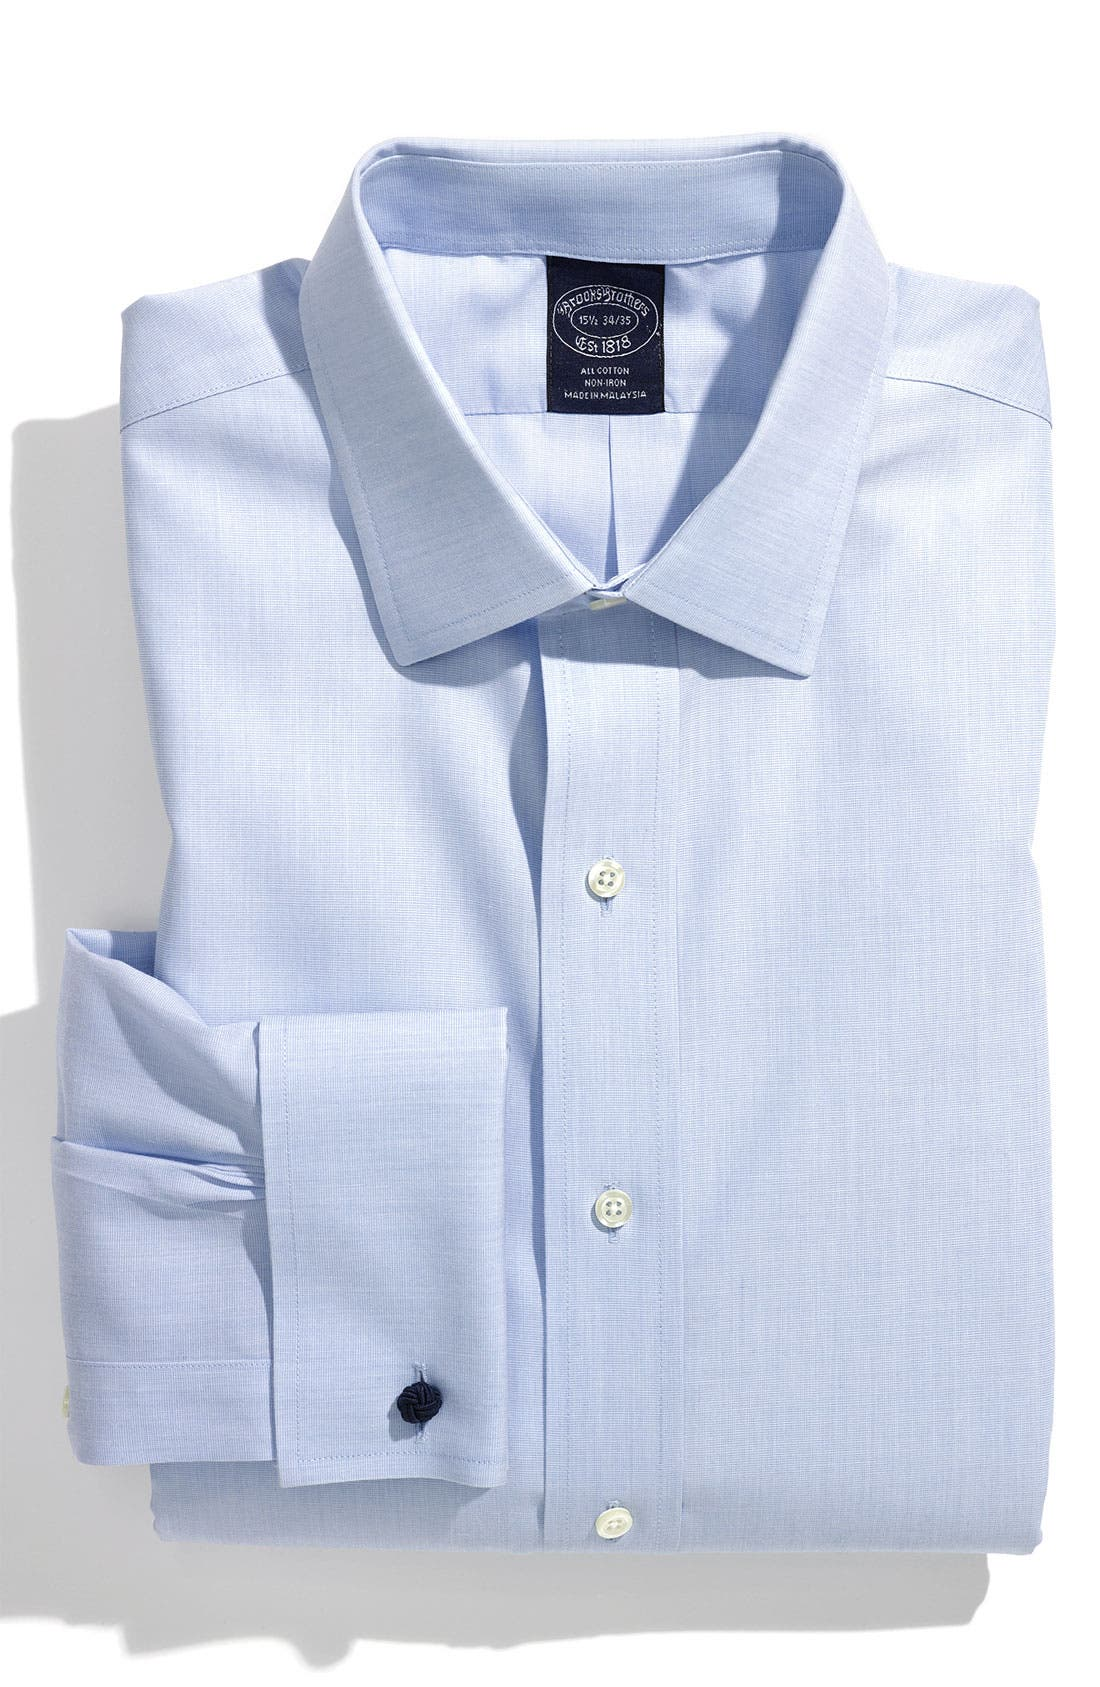 Alternate Image 1 Selected - Brooks Brothers Regular Fit Non-Iron Dress Shirt